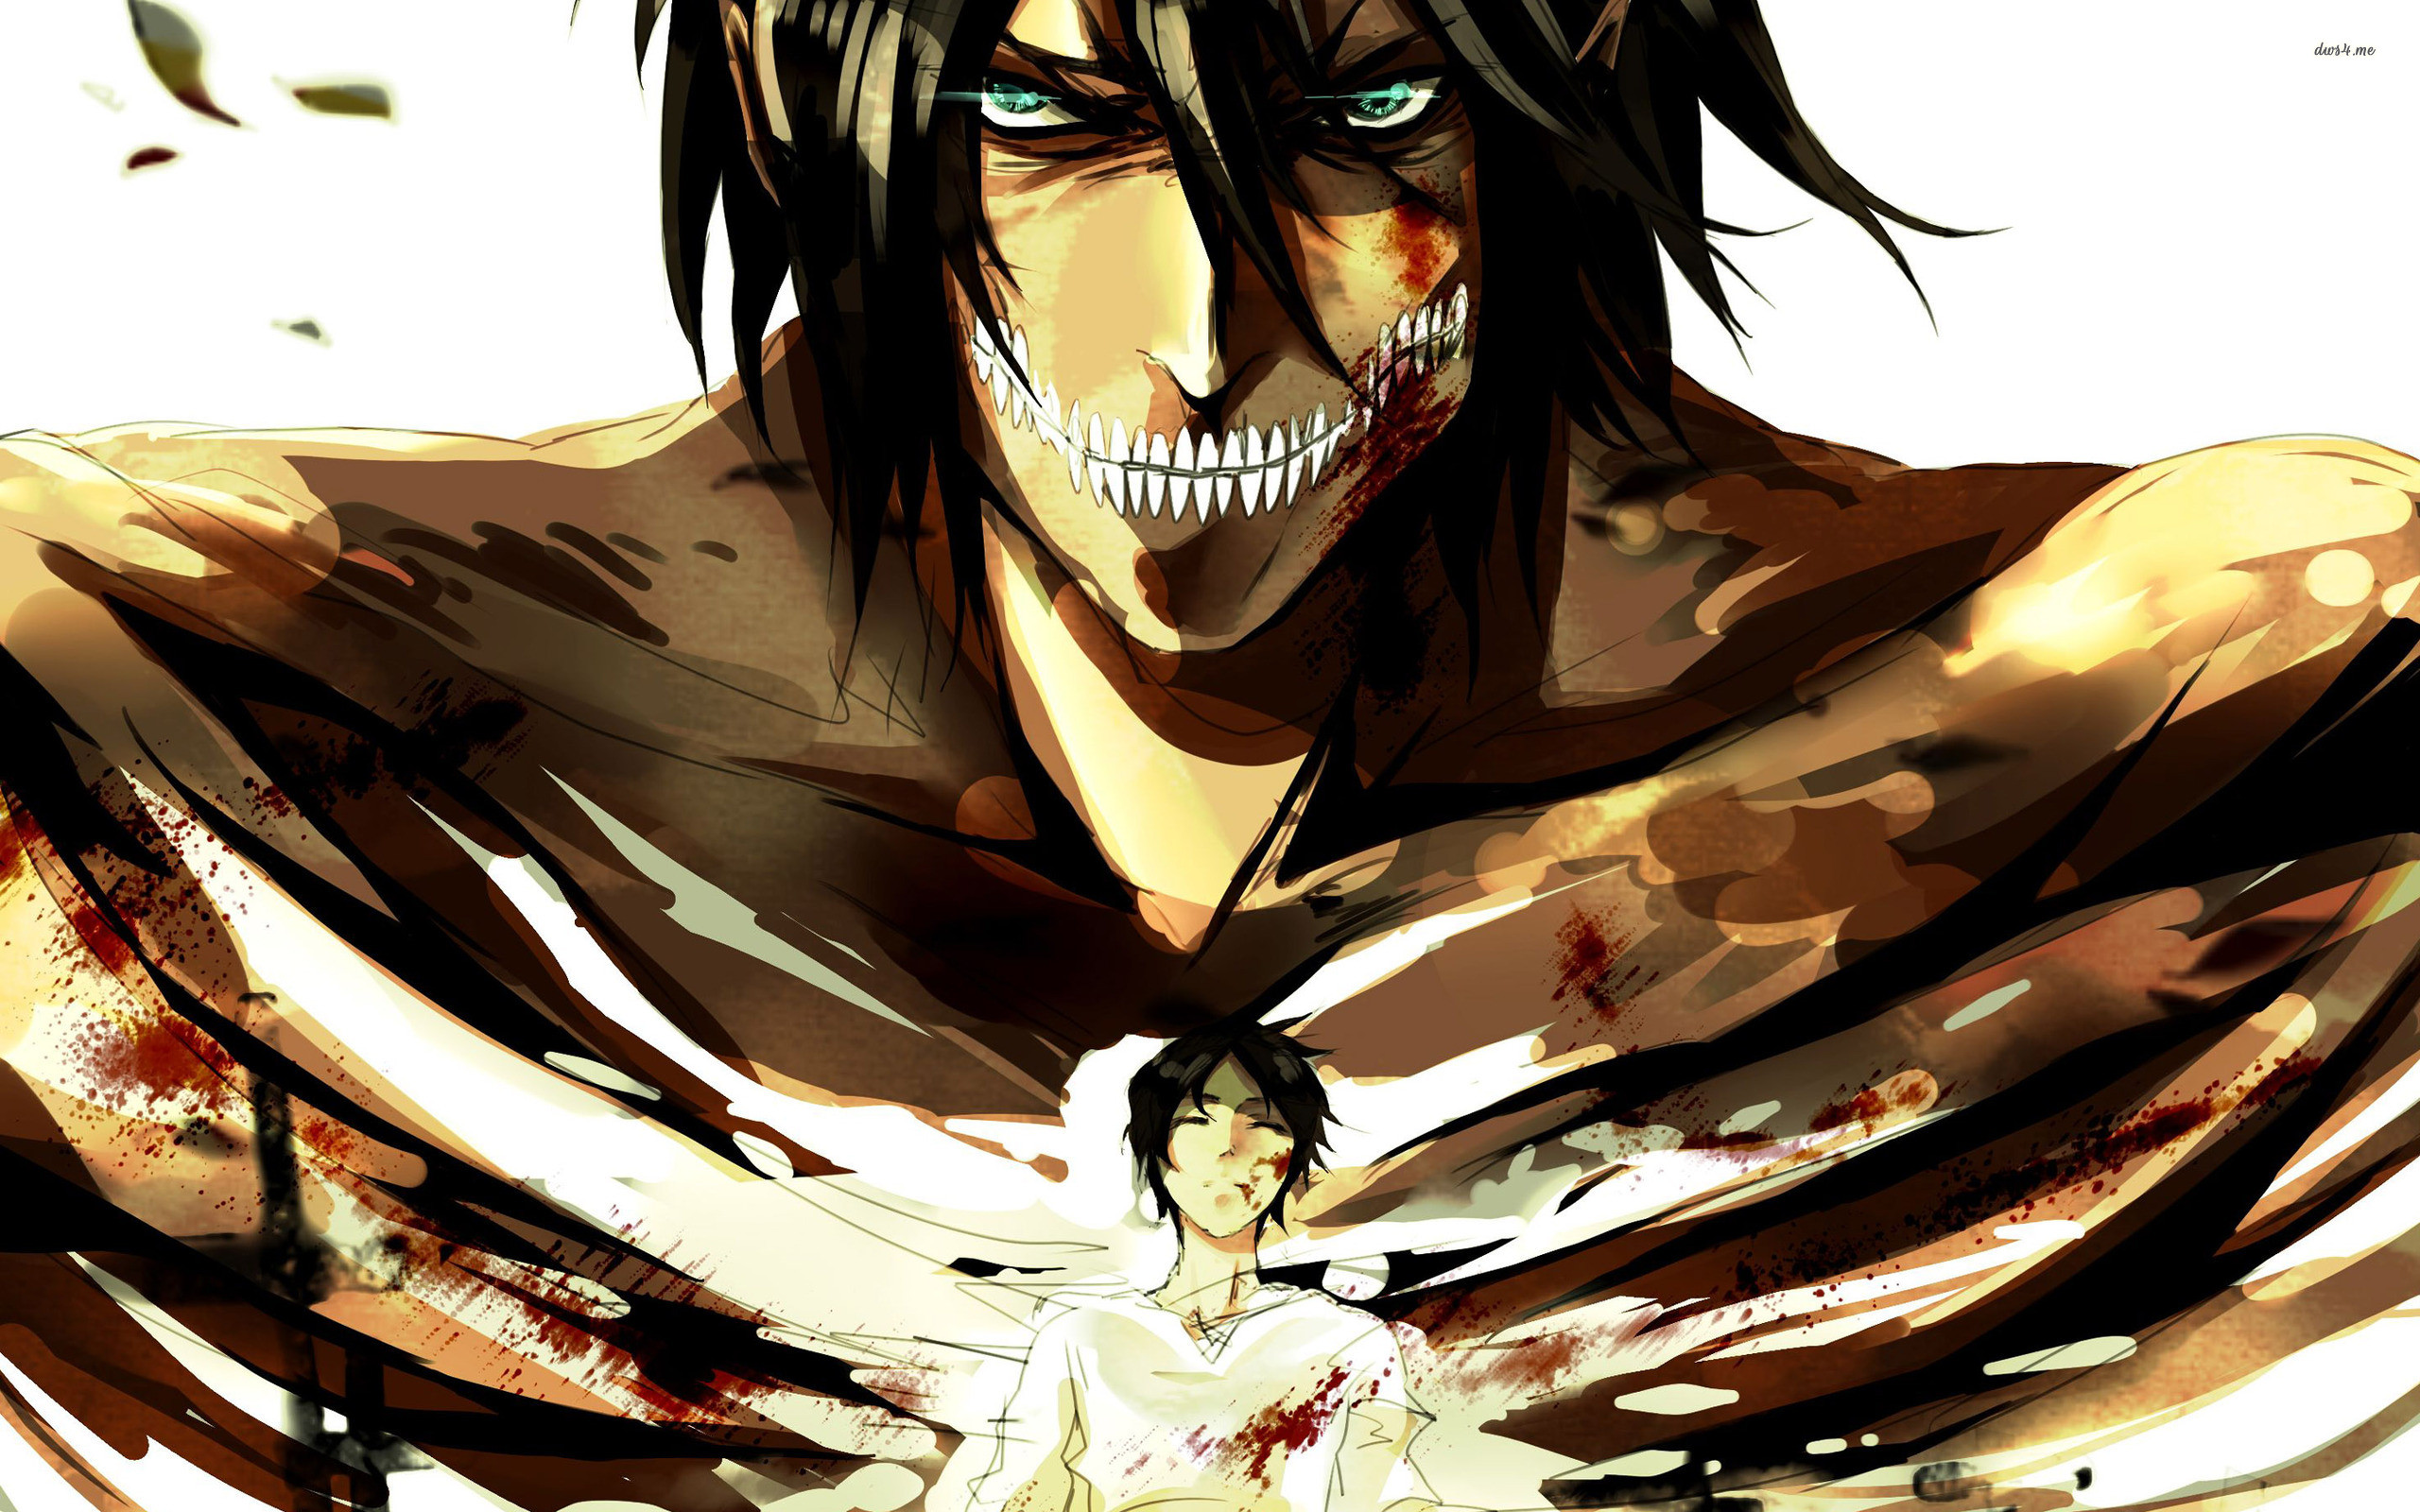 Wall titan png transparent image for free, wall titan clipart. Attack on Titan Wallpapers (71+ images)